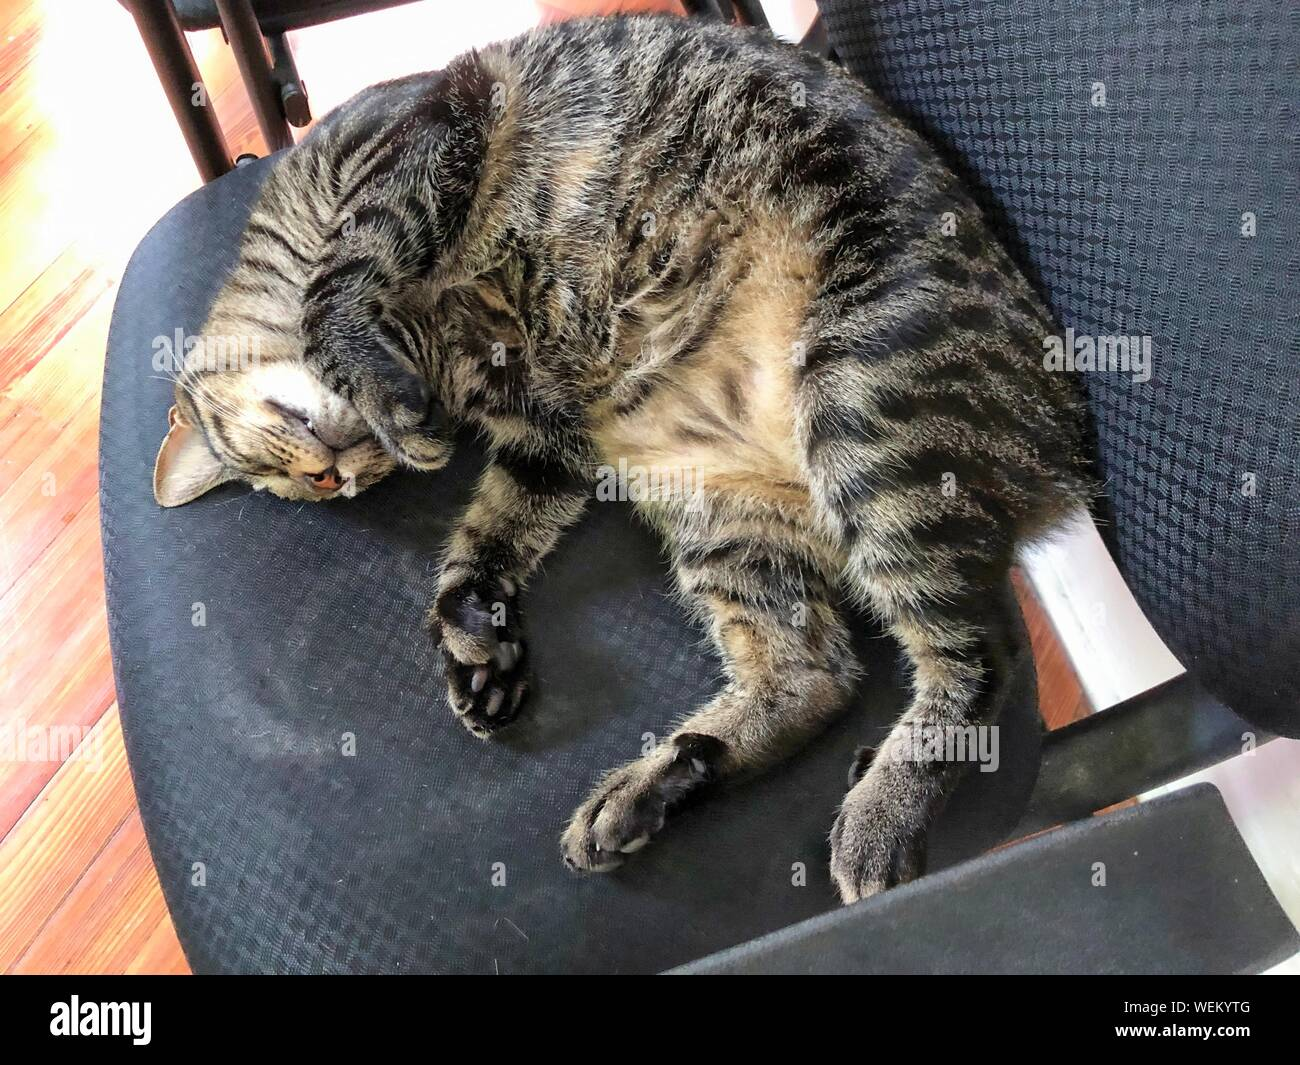 A pampered cat sleeps in a chair at the Ernest Hemingway house in Key West, Florida. Stock Photo